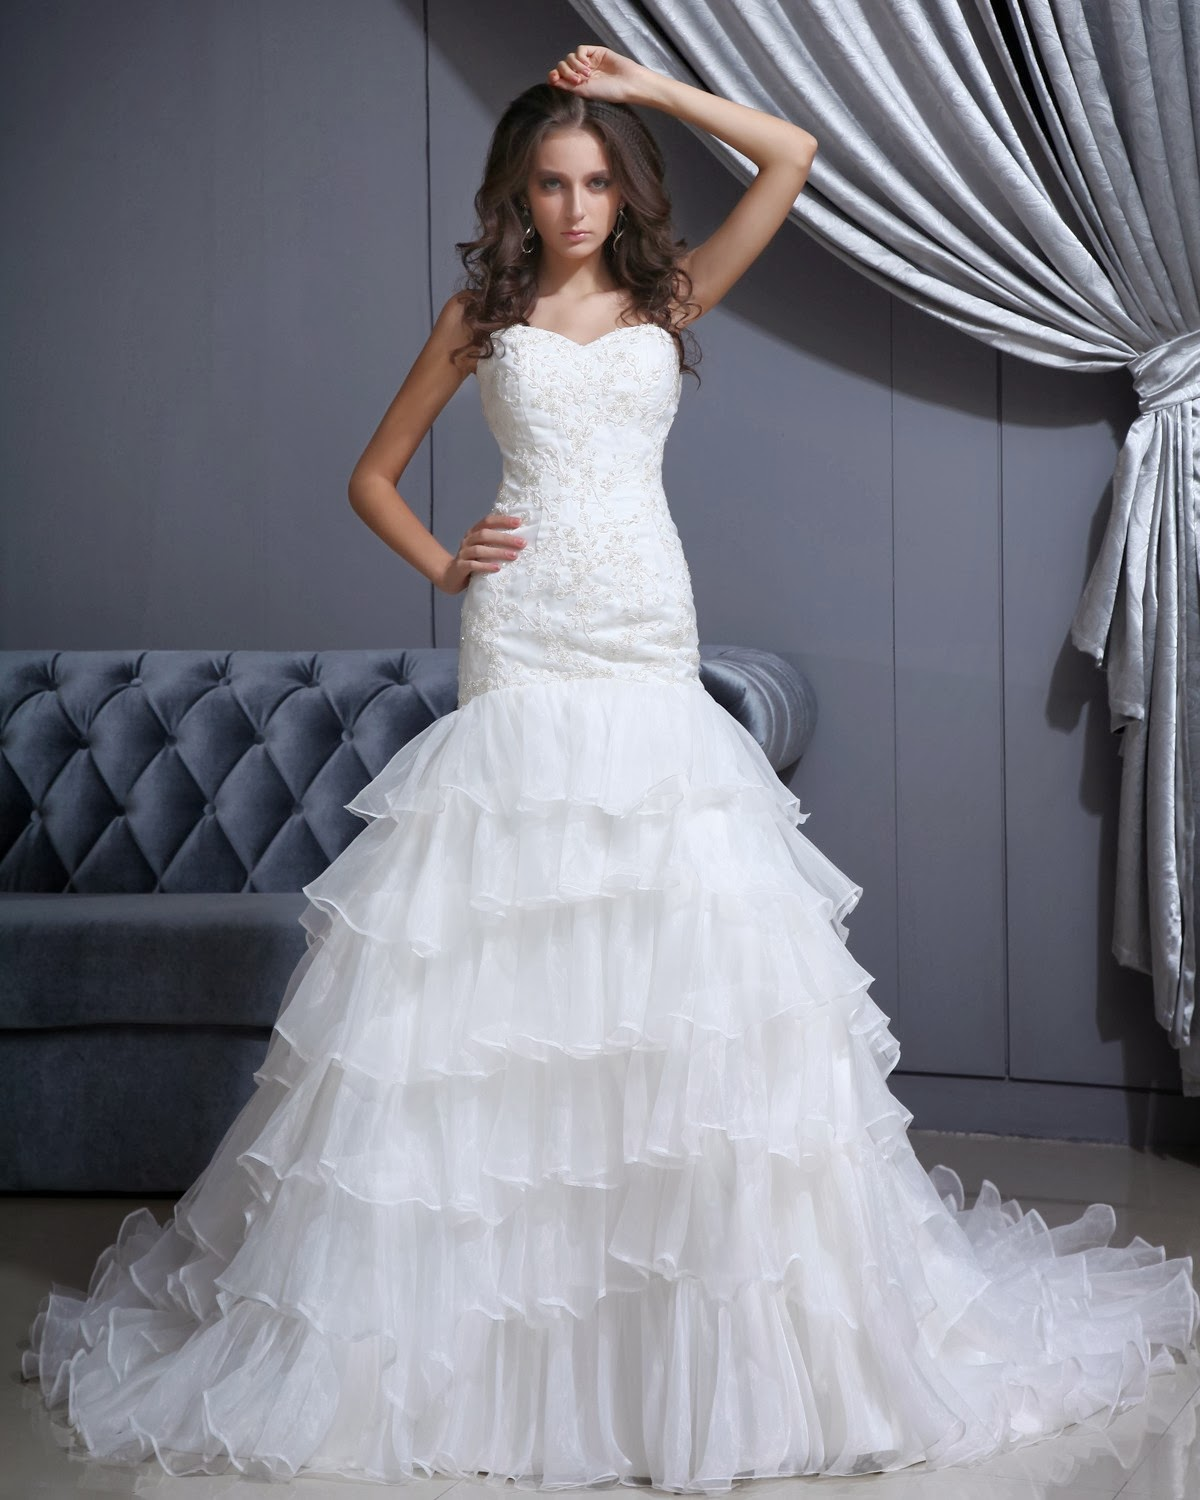 Wedding dress finding discount wedding gowns online for Where to buy cheap wedding dresses online